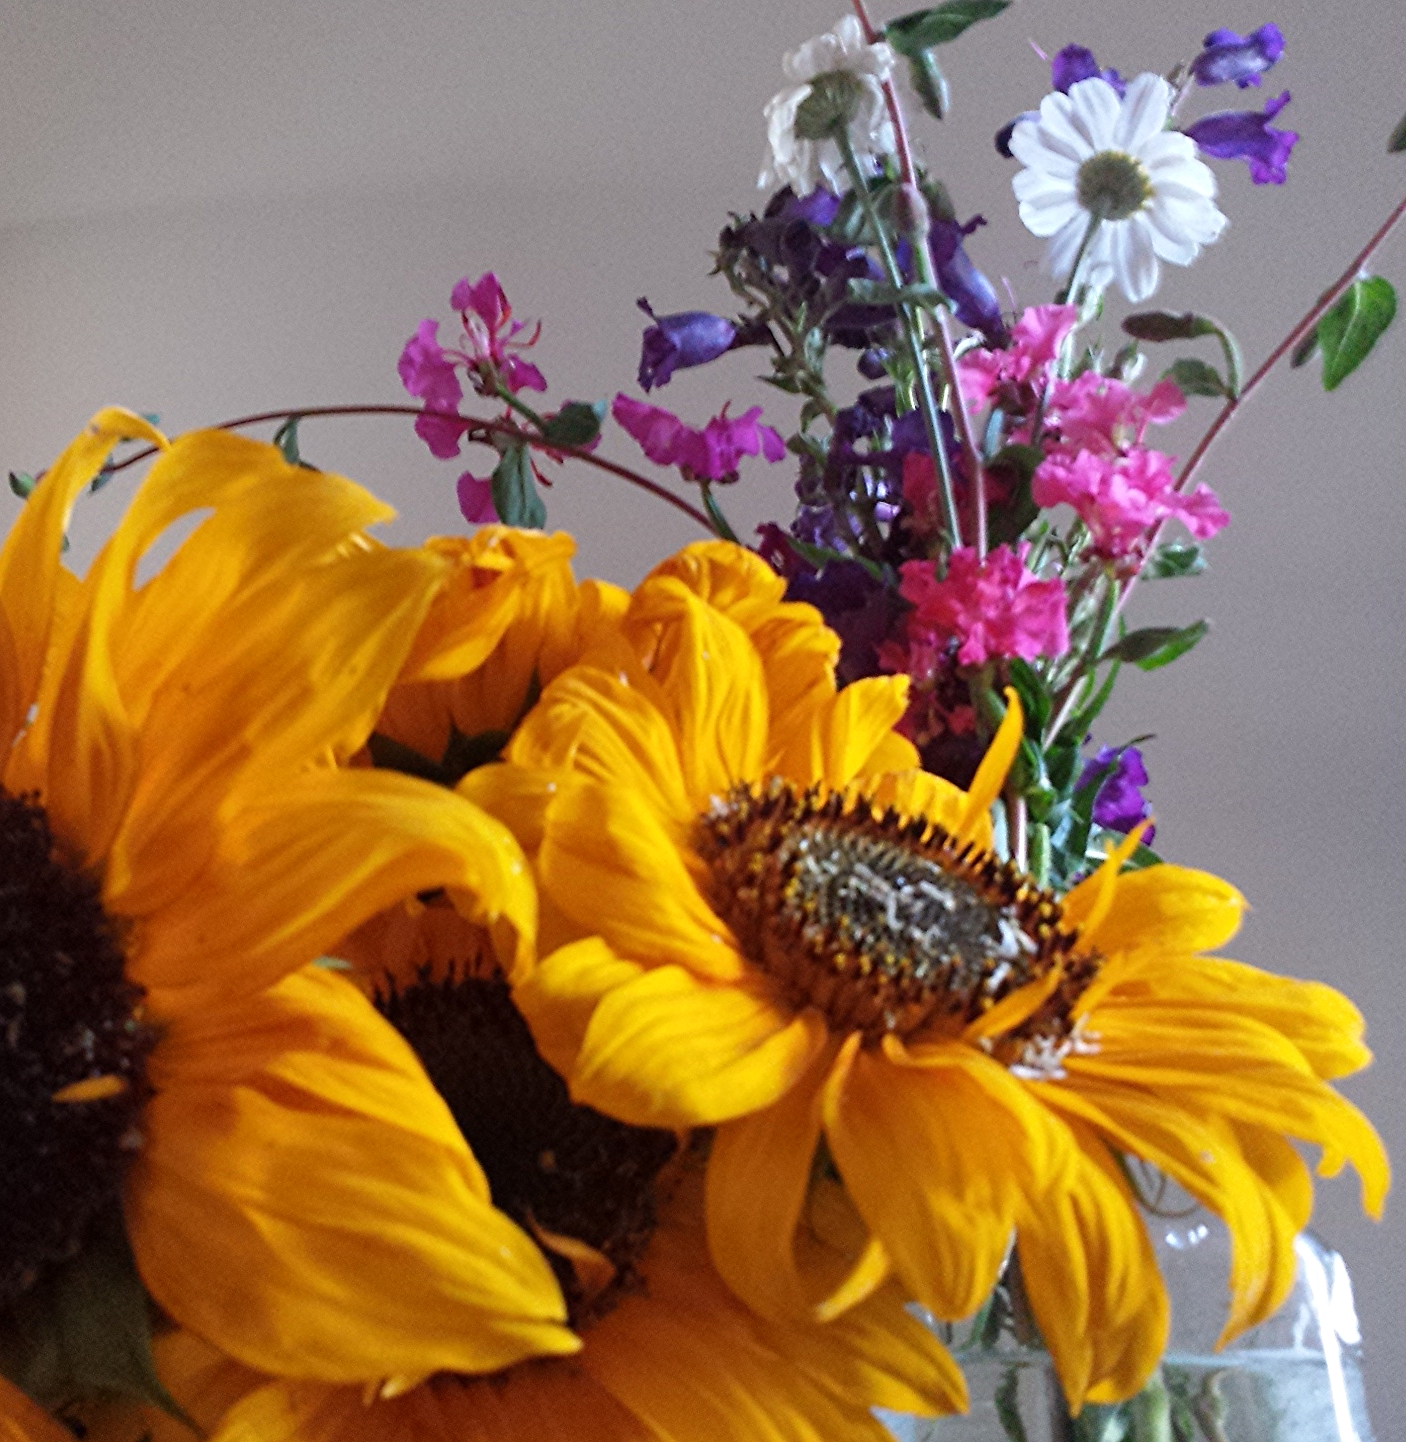 Farmstand flowers at home.